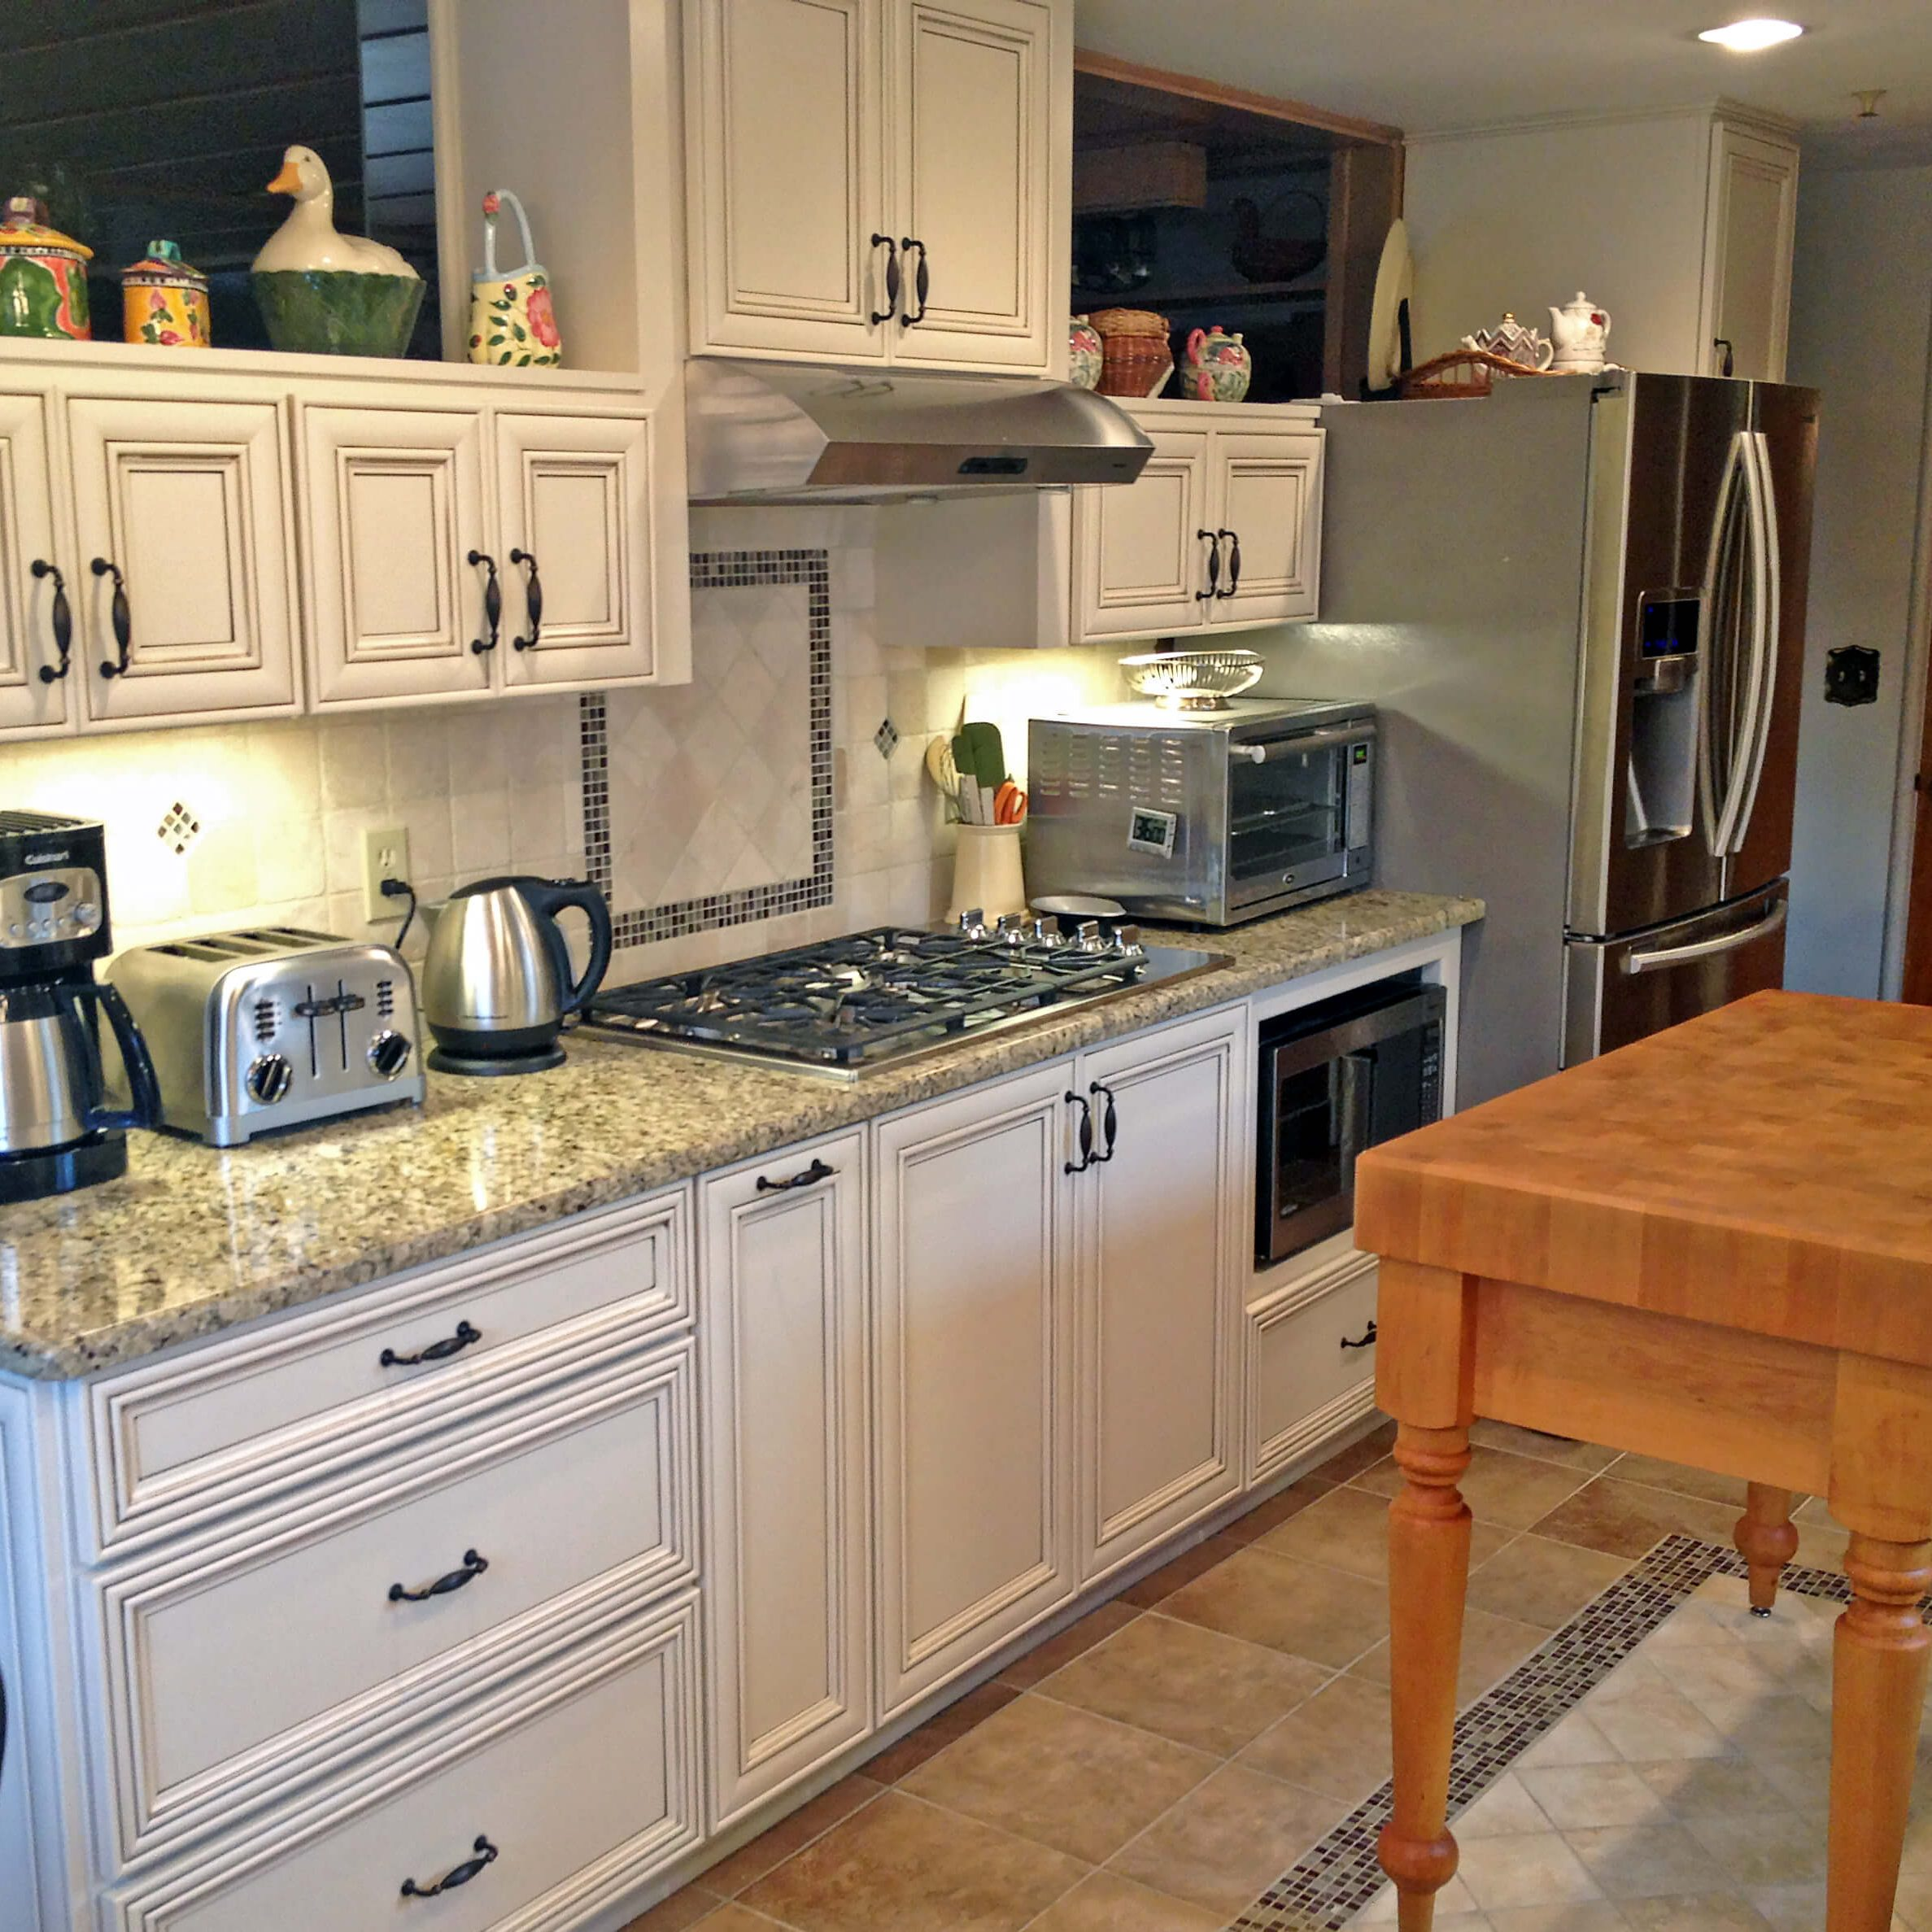 Kinetic Kitchen and Bath Gallery Photo - Kitchen remodel design 10